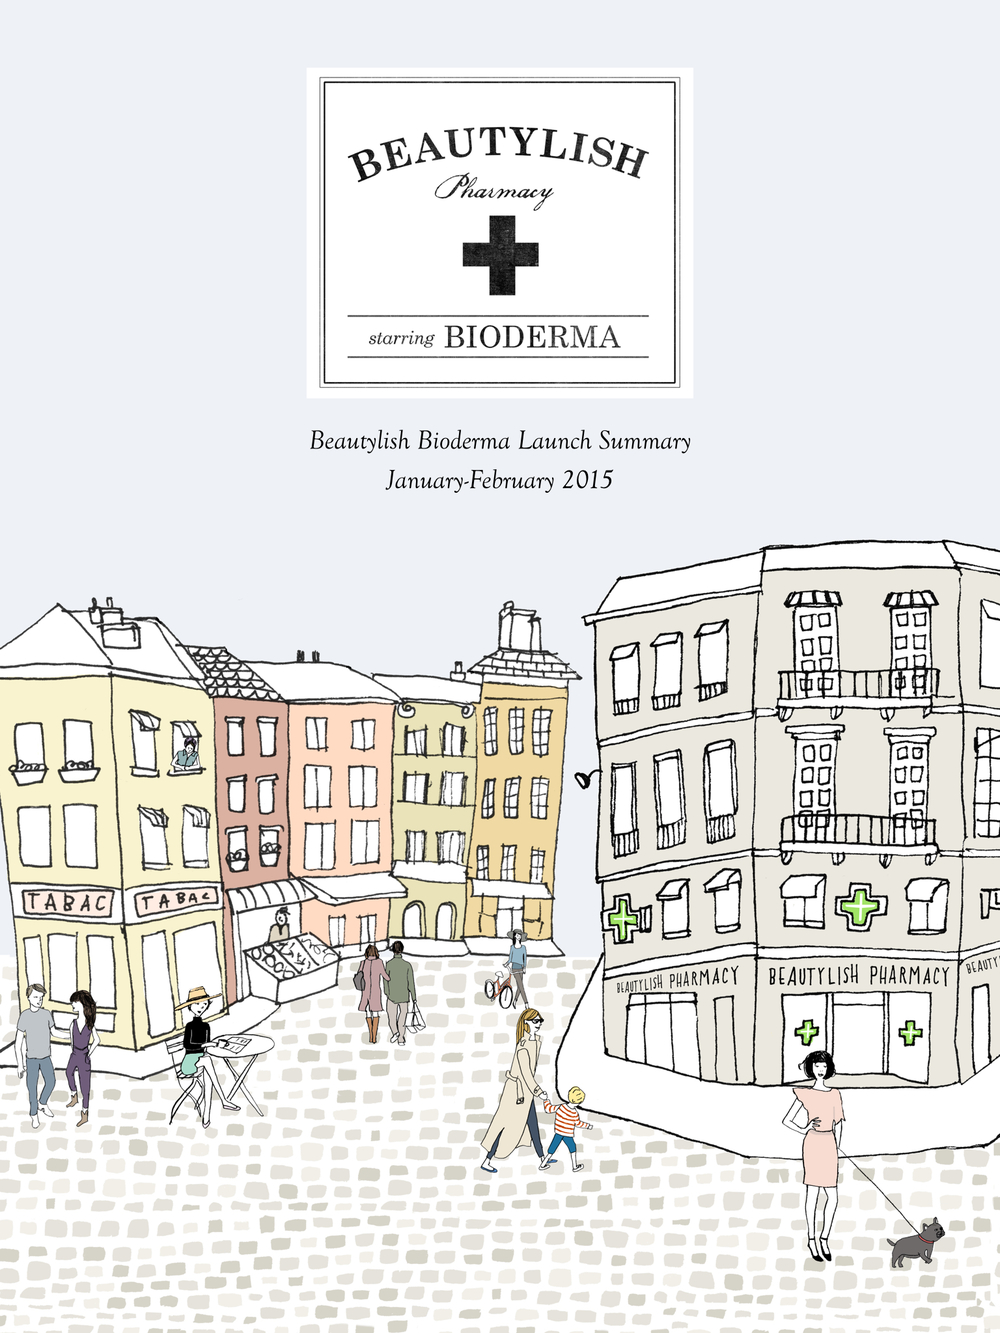 beautylish_bioderma_launch_summary.001.jpg